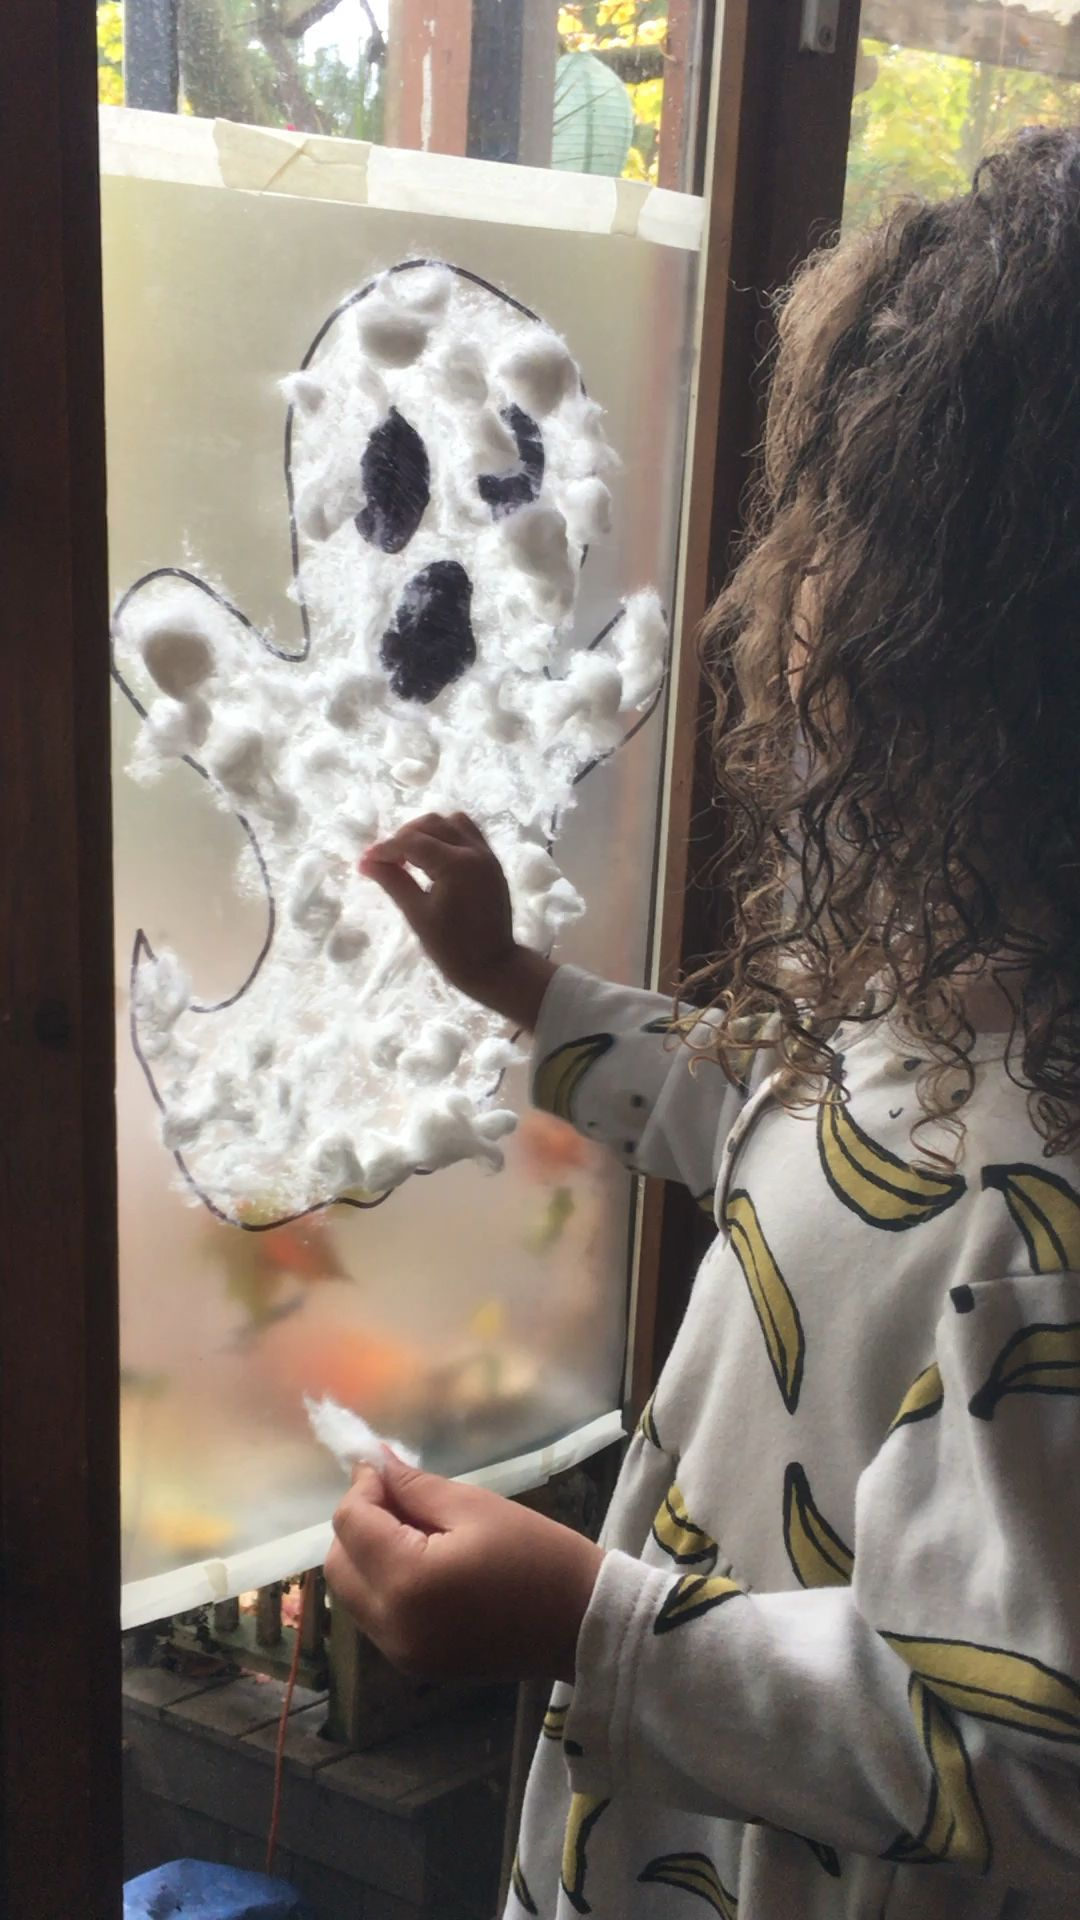 Ghost Sticky Wall Here is a fun and easy Halloween activity using contact paper. Ghost Sticky Wall is fun for toddlers, preschoolers and big kids! #fallcraftsforkidspreschool